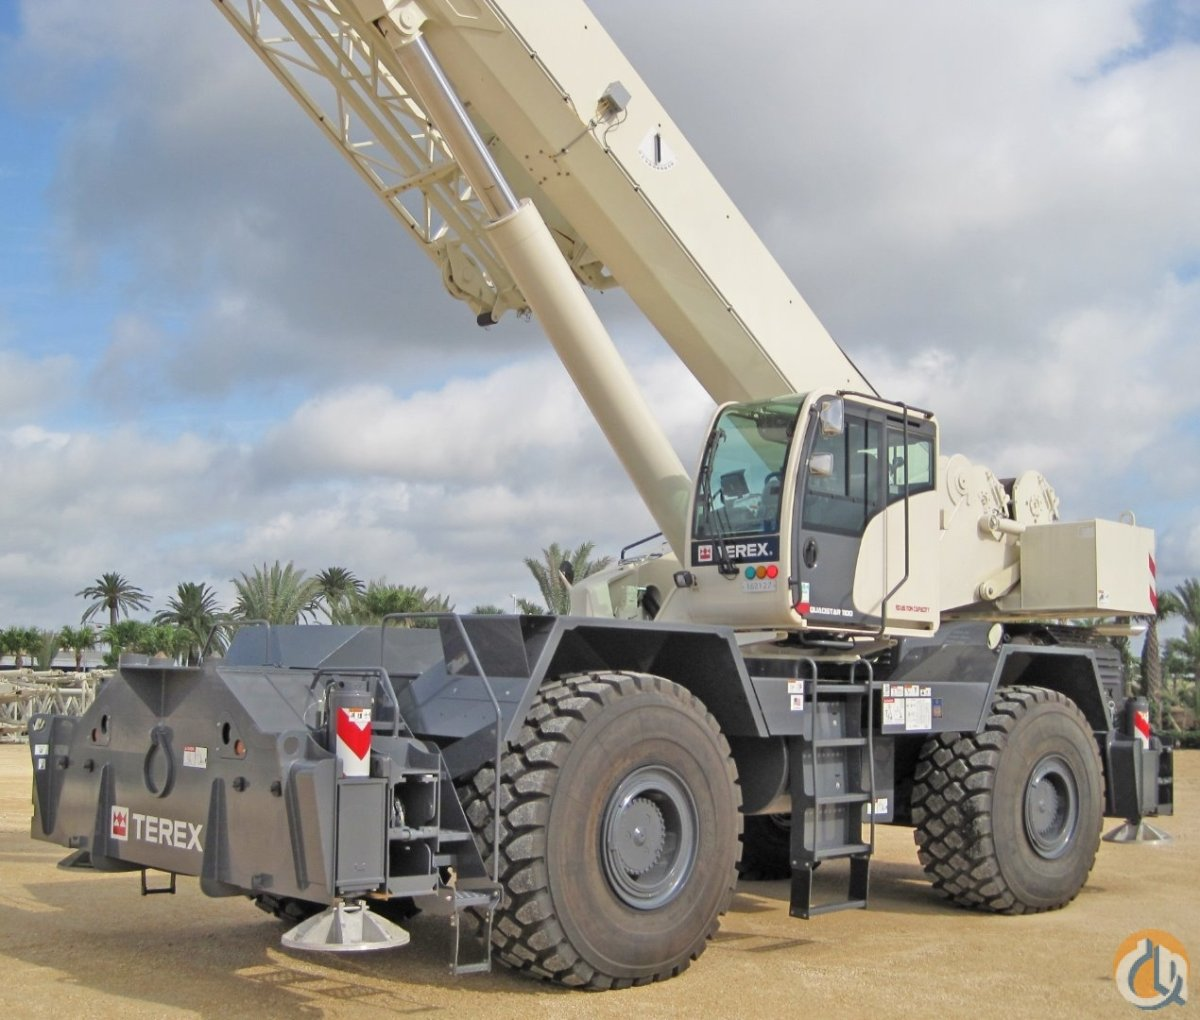 Terex QUADSTAR 1100 Rough Terrain Cranes Crane for Sale YR END ALE Take advantage of Sect179Bonus Depreciation   TEREX PRICE REDUCED CALL US FOR HUGE AVING in Houston  Texas  United States 208298 CraneNetwork